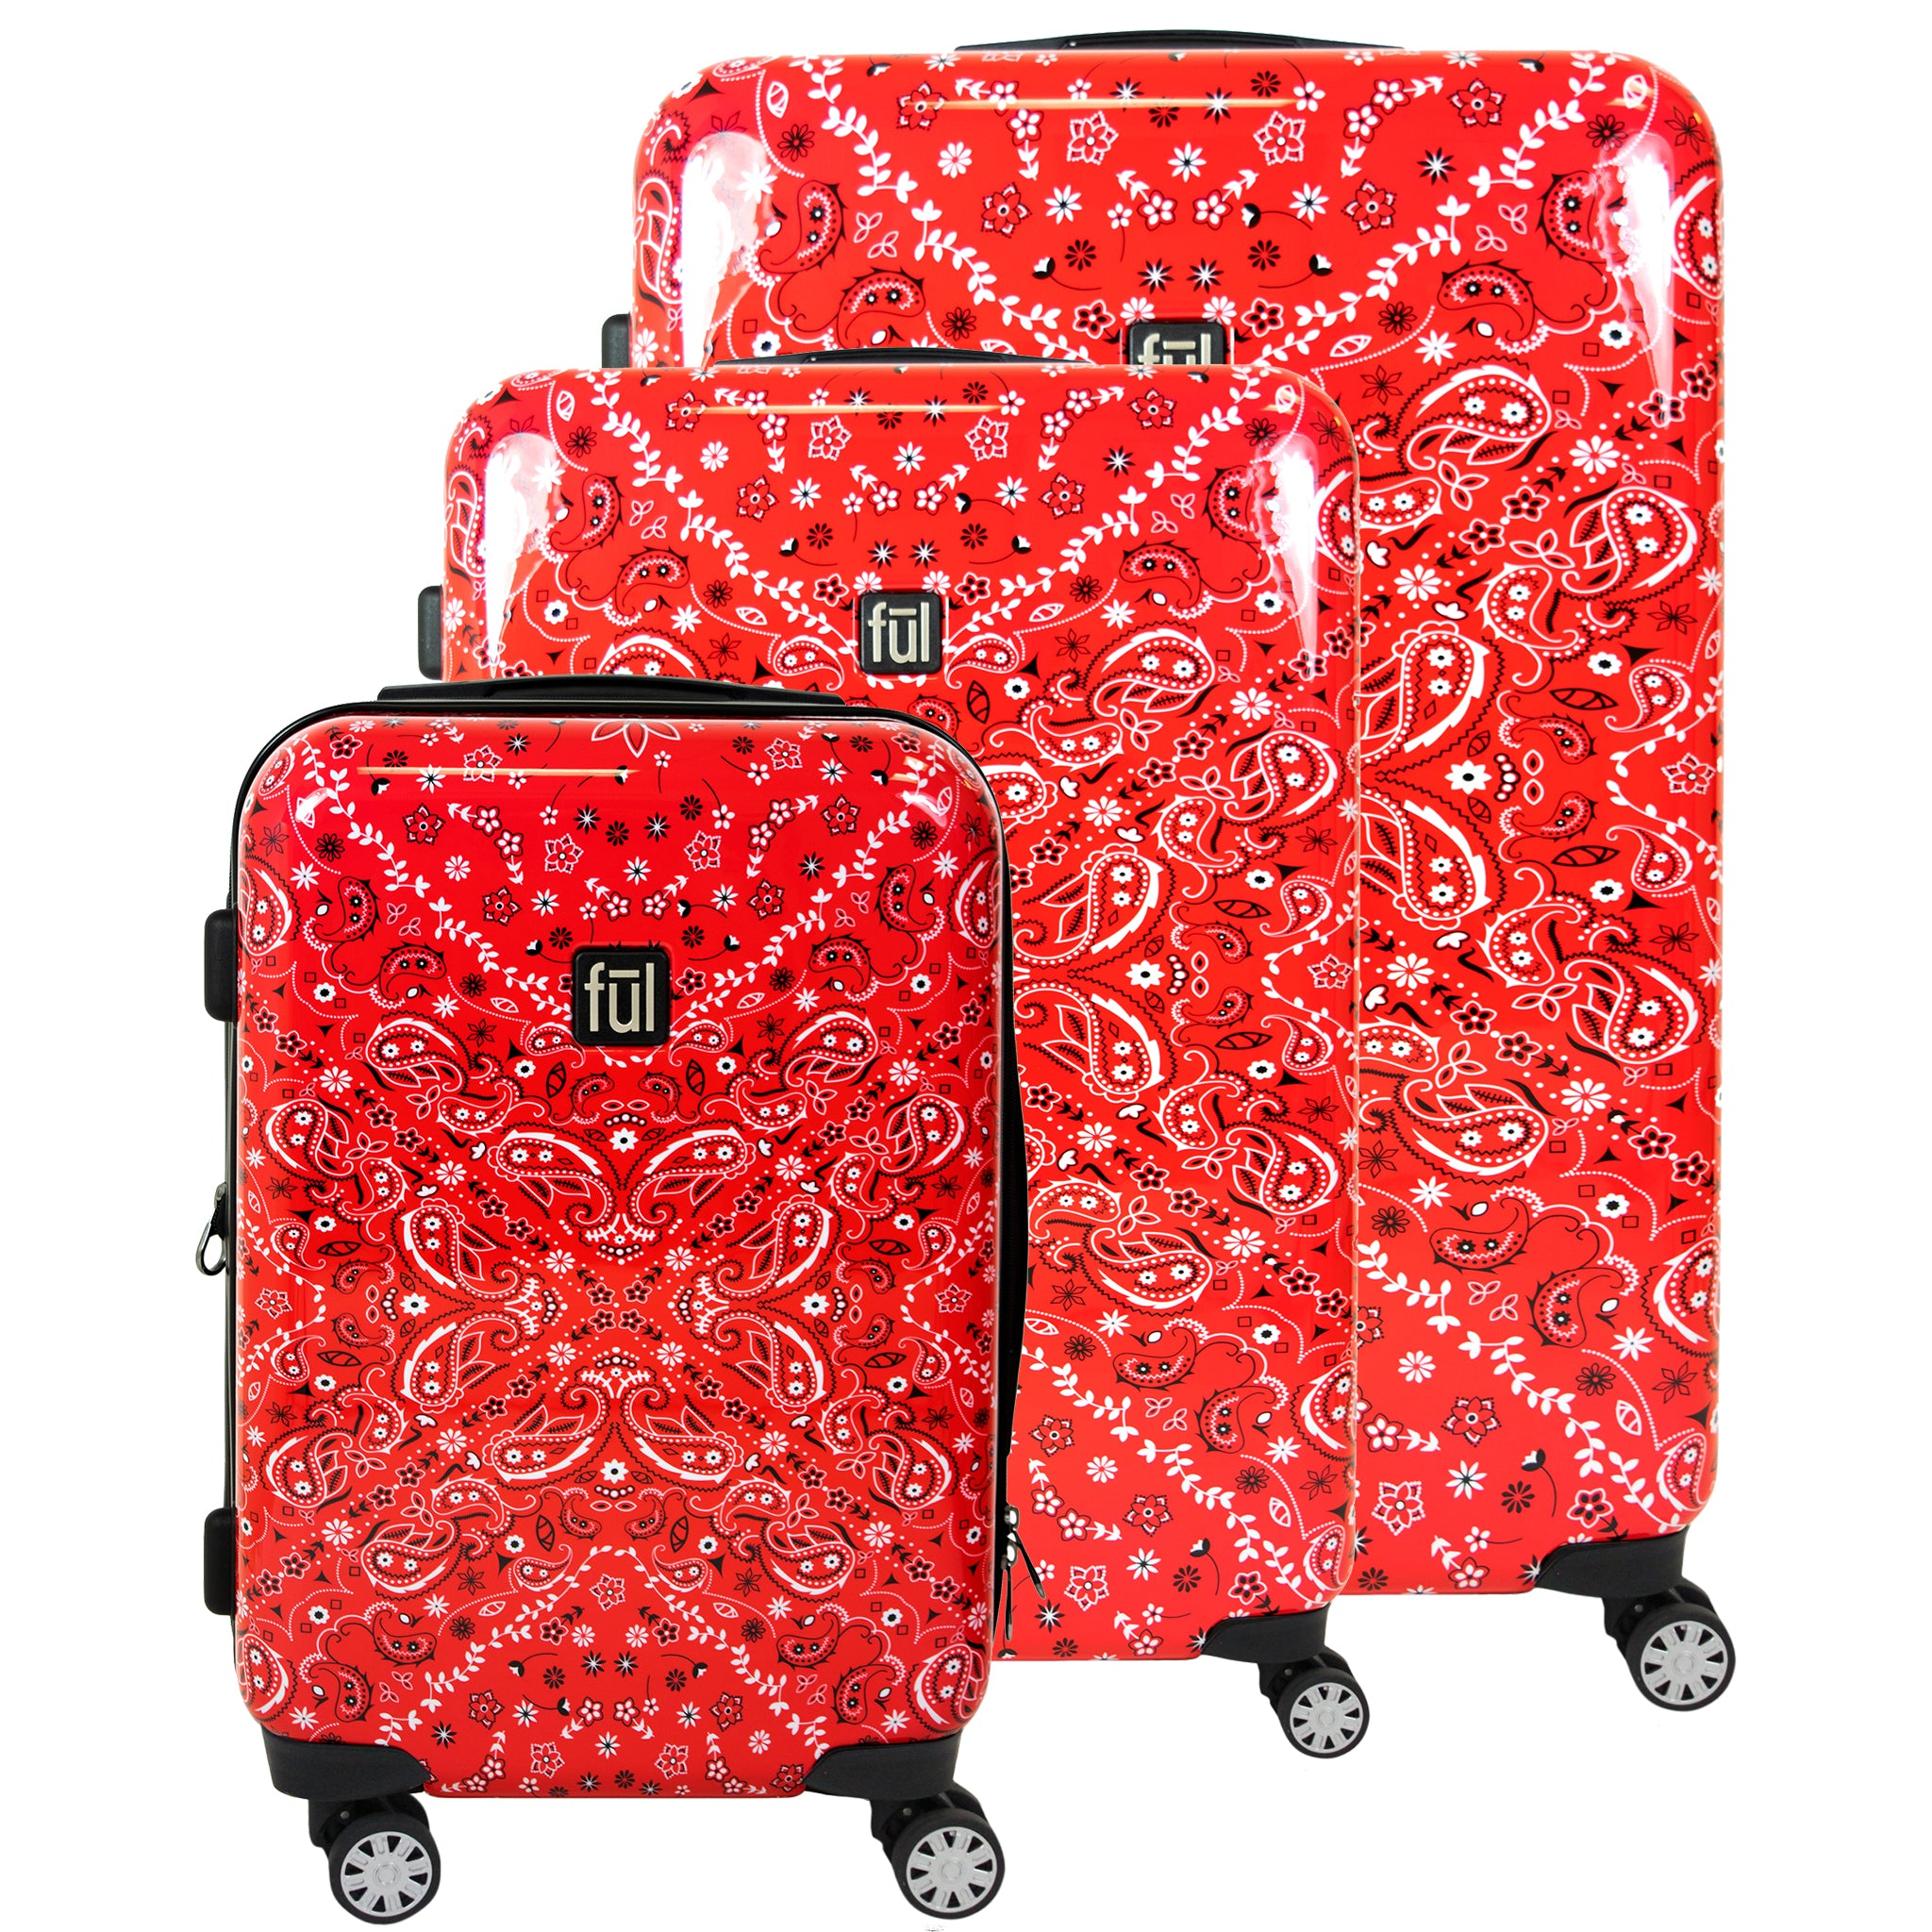 Bandana Hard Sided Luggage, 29, 25, and 21in Suitcases